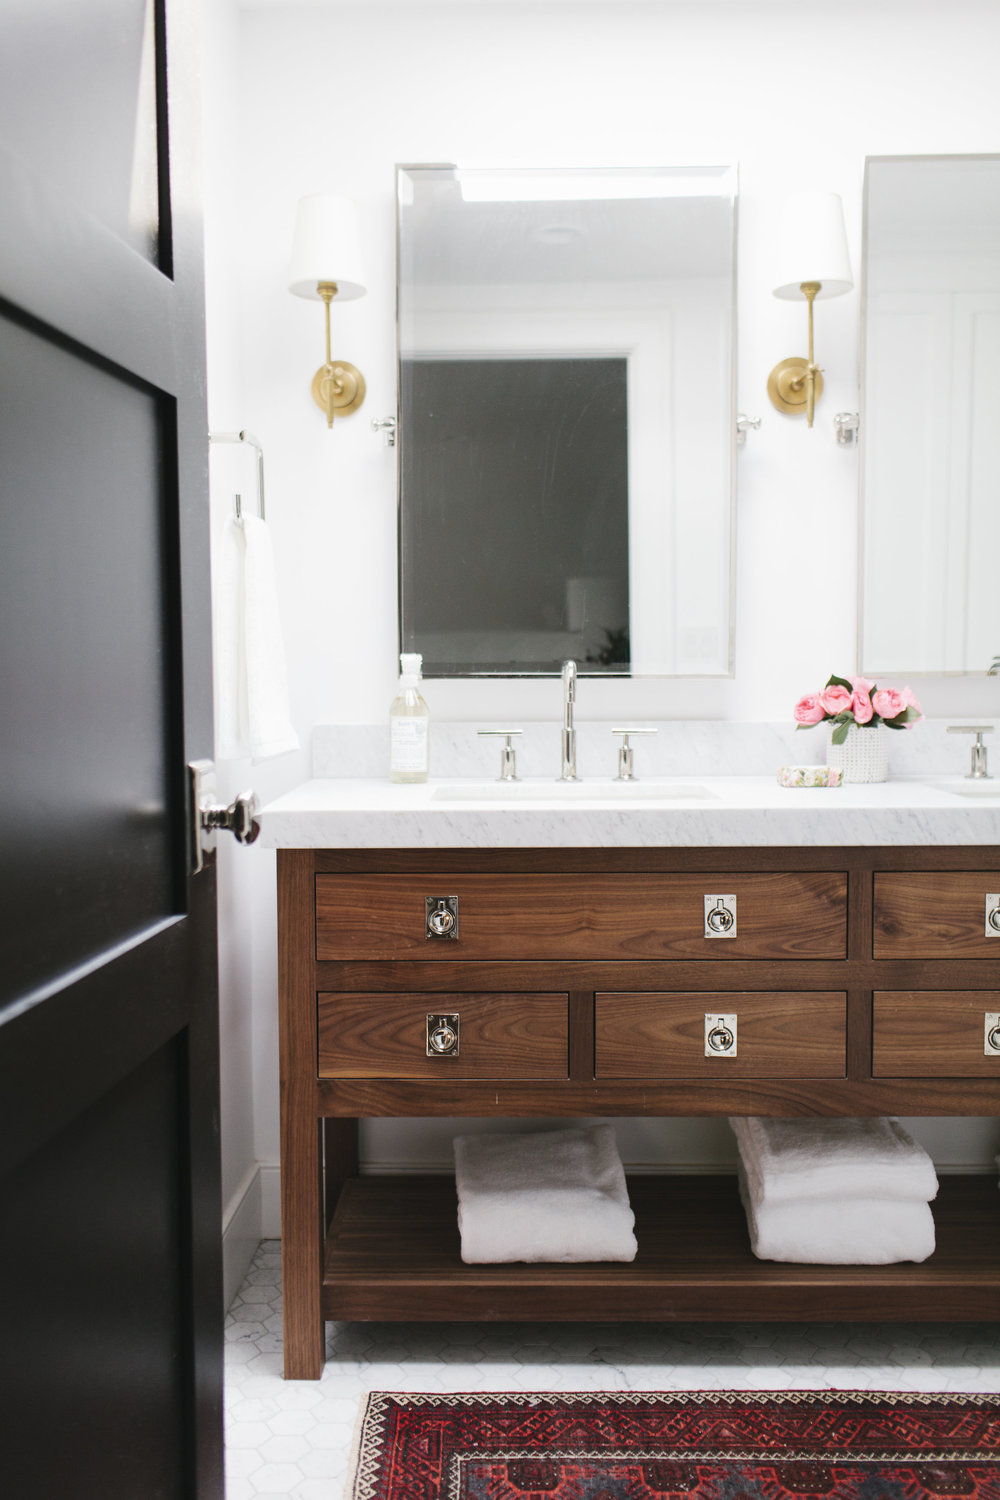 In our lynwood remodel the combination of wood and marble with polished nickel and brass fixtures creates a bathroom thats equal parts rich and warm